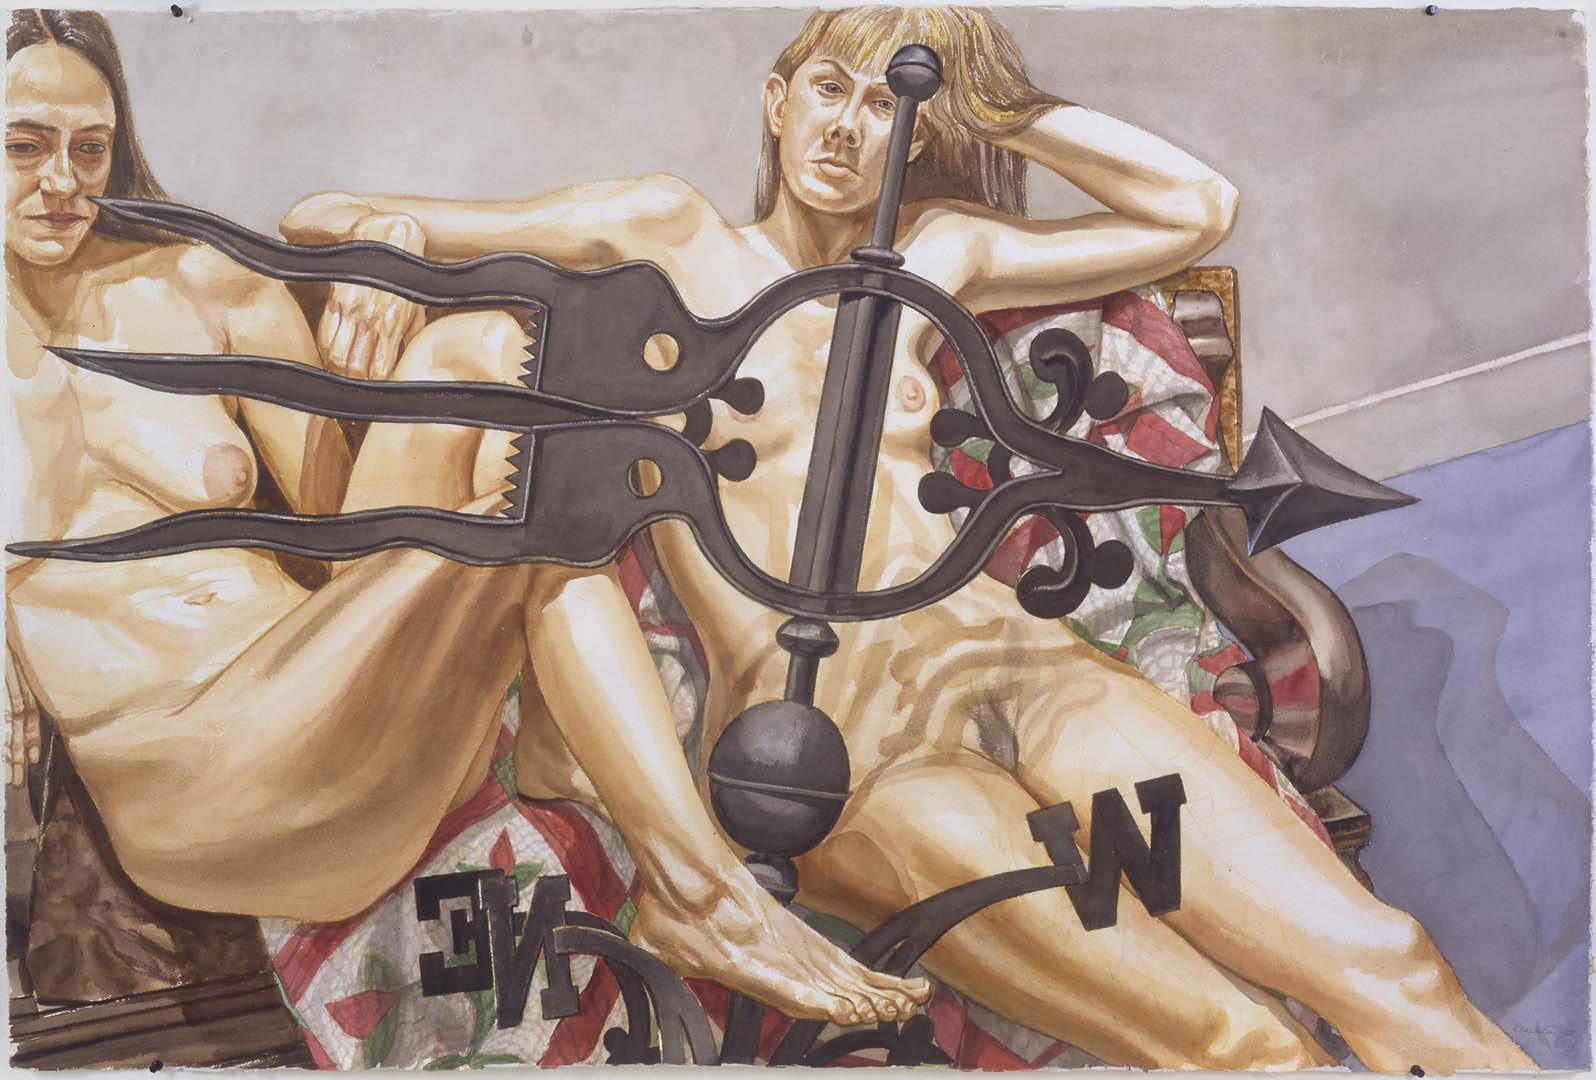 1998 Two Nudes with Banner Weather Vane Watercolor on Paper 40.5 x 60